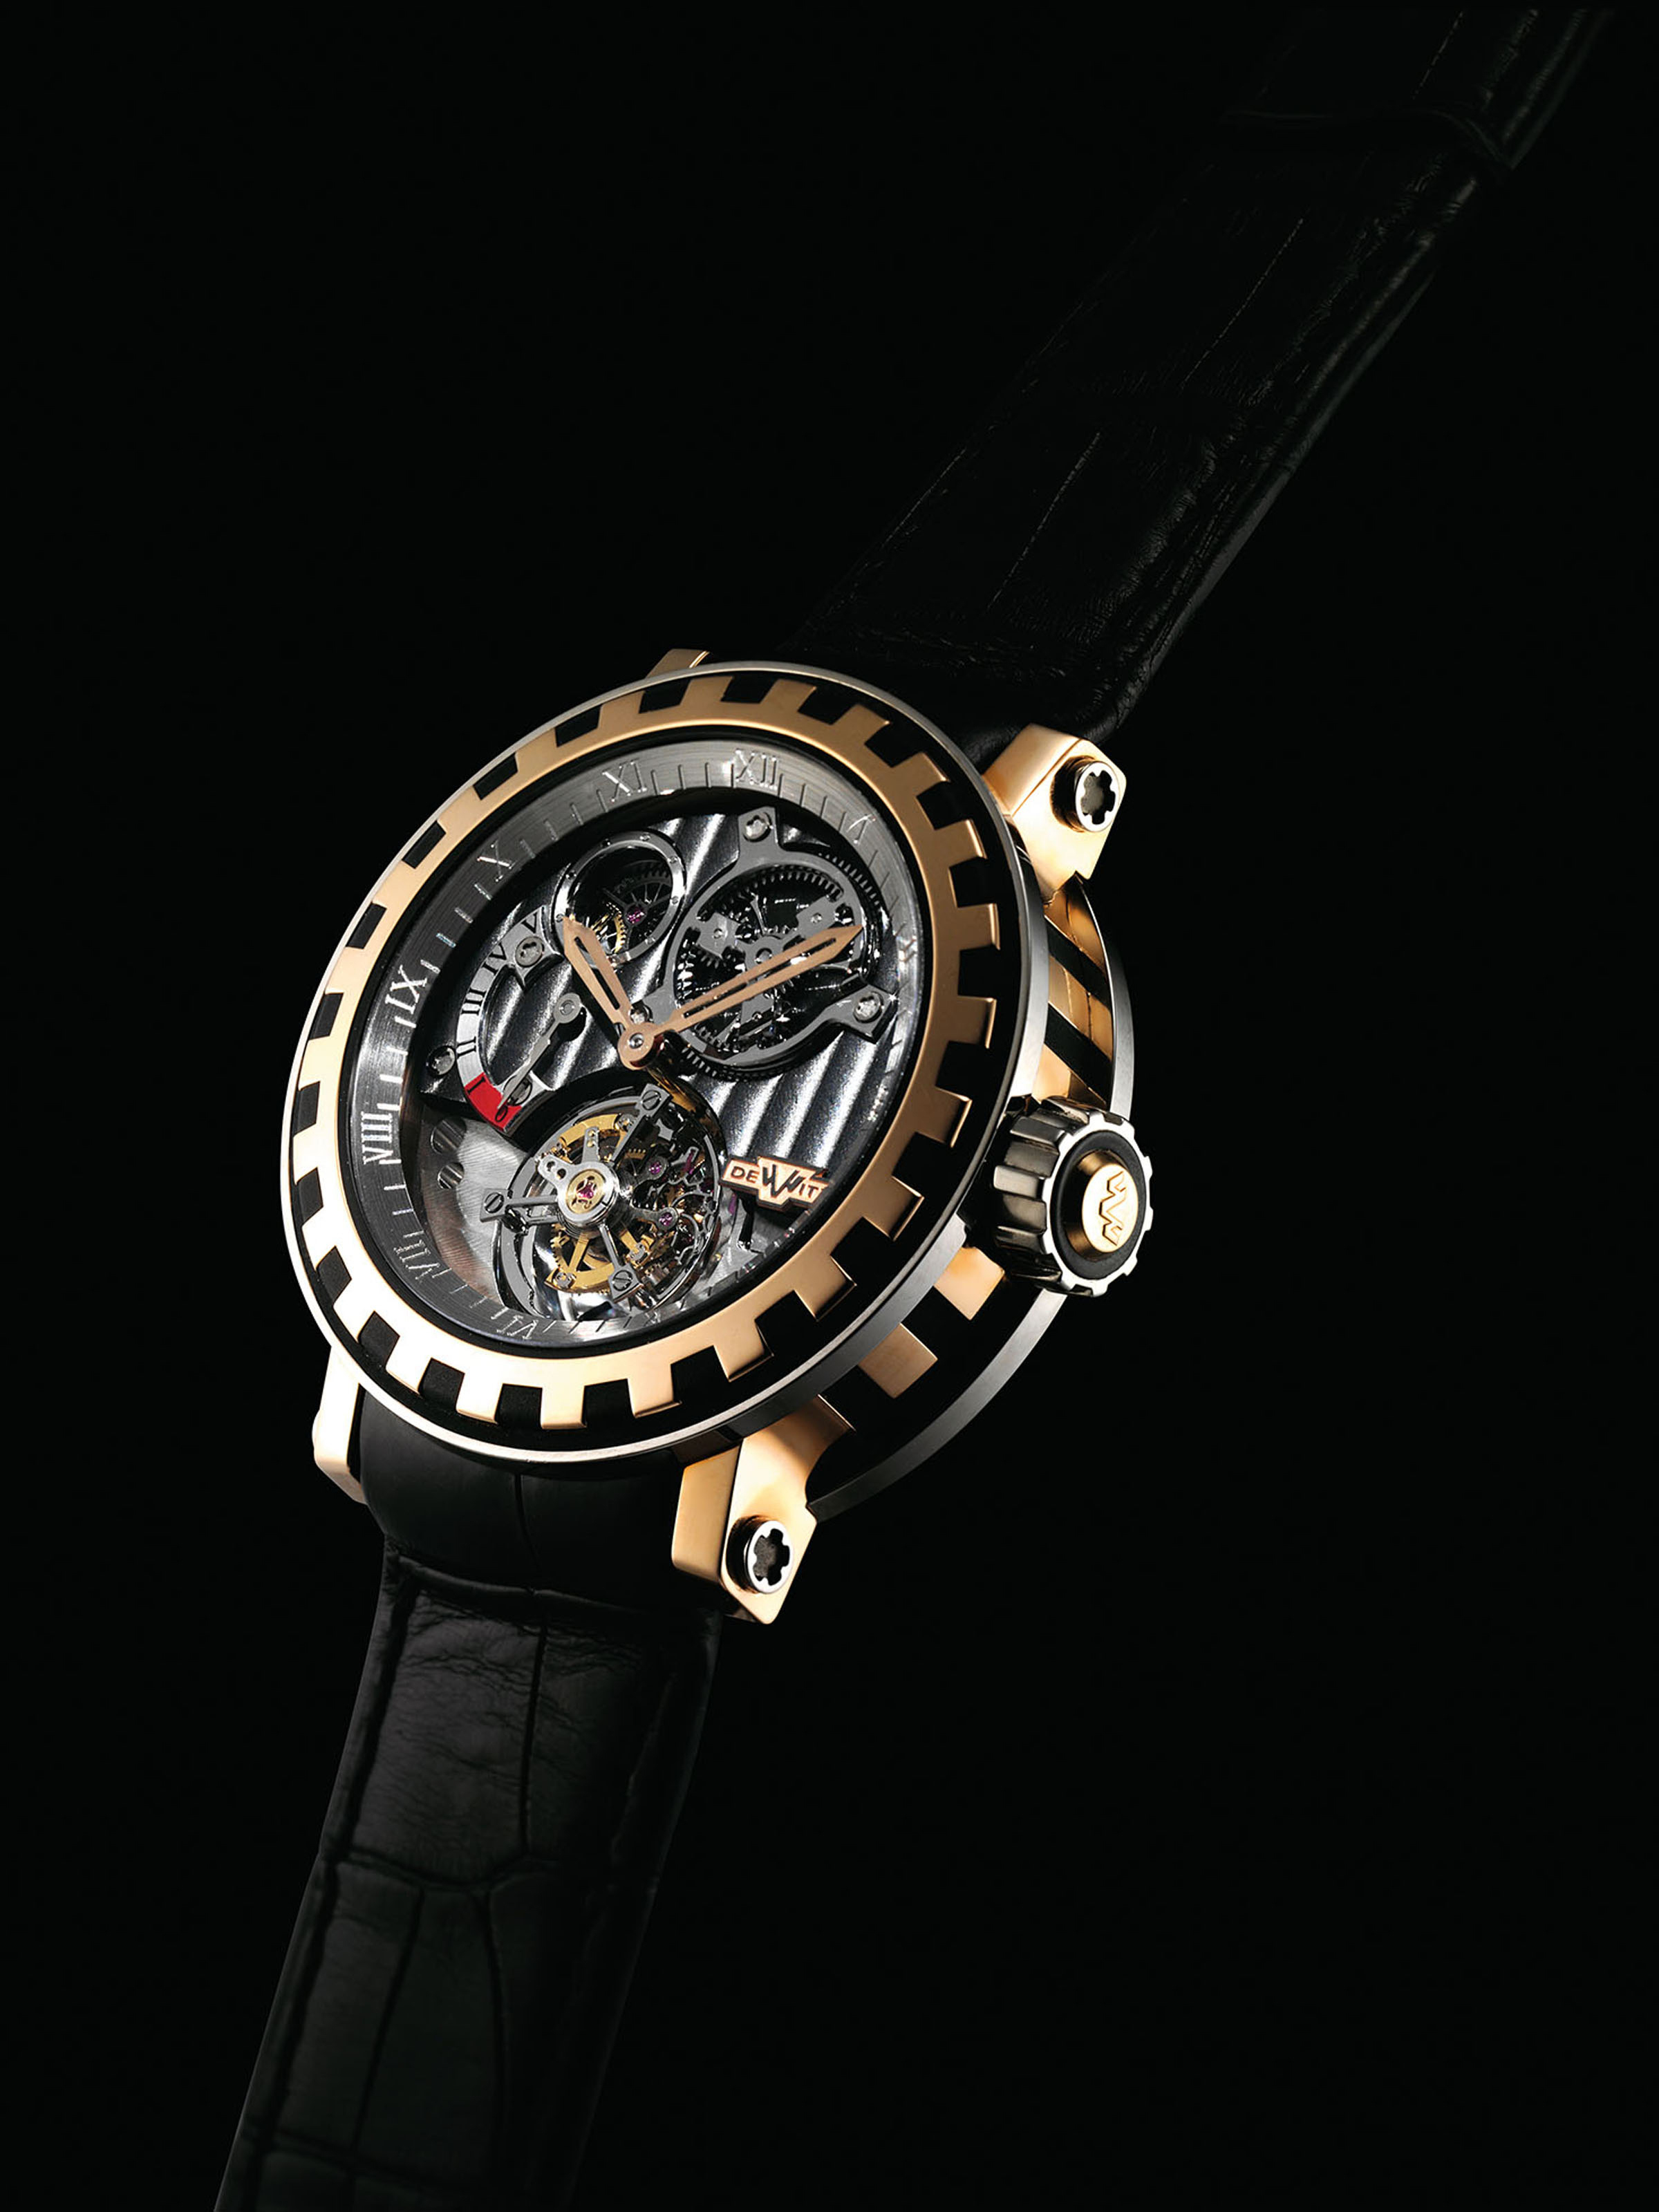 DEWITT. A FINE AND RARE 18K TWO-COLOUR GOLD AND RUBBER-SET LIMITED EDITION SEMI-SKELETONISED TOURBILLON WRISTWATCH WITH POWER RESERVE